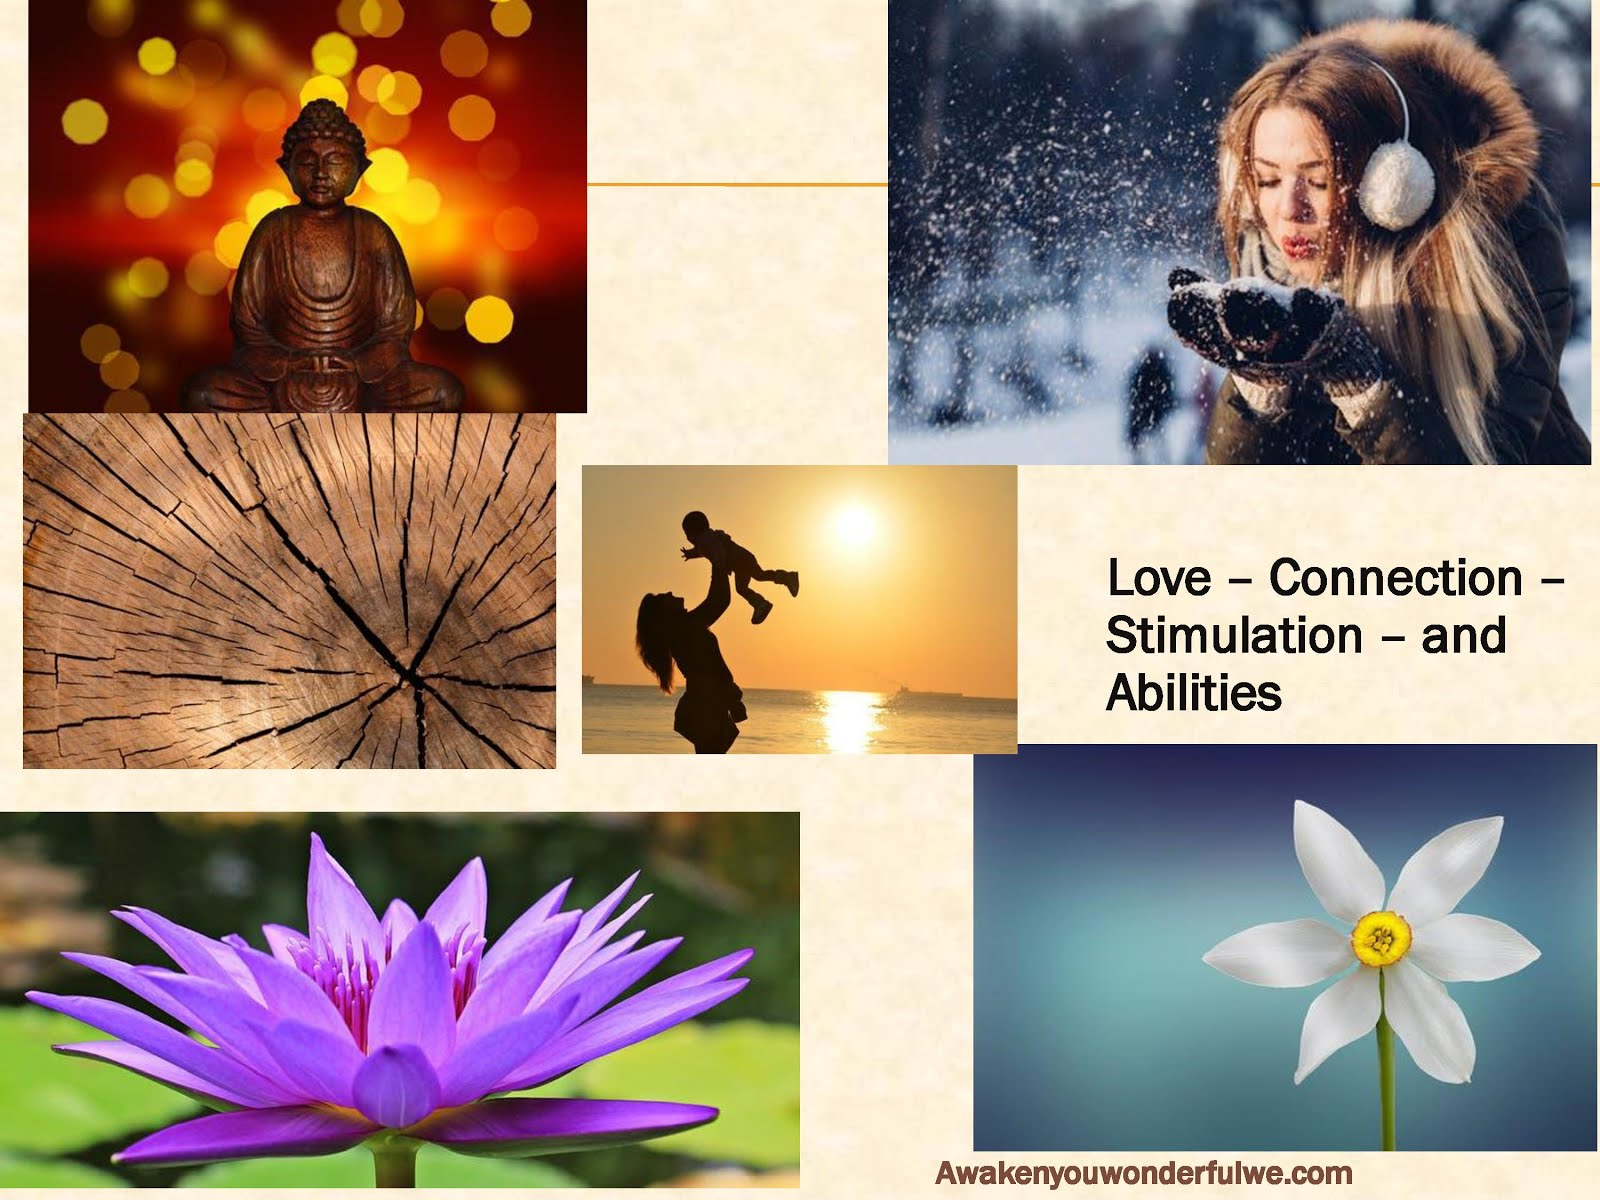 Love - Connection - Abilities and suitable challenging 3